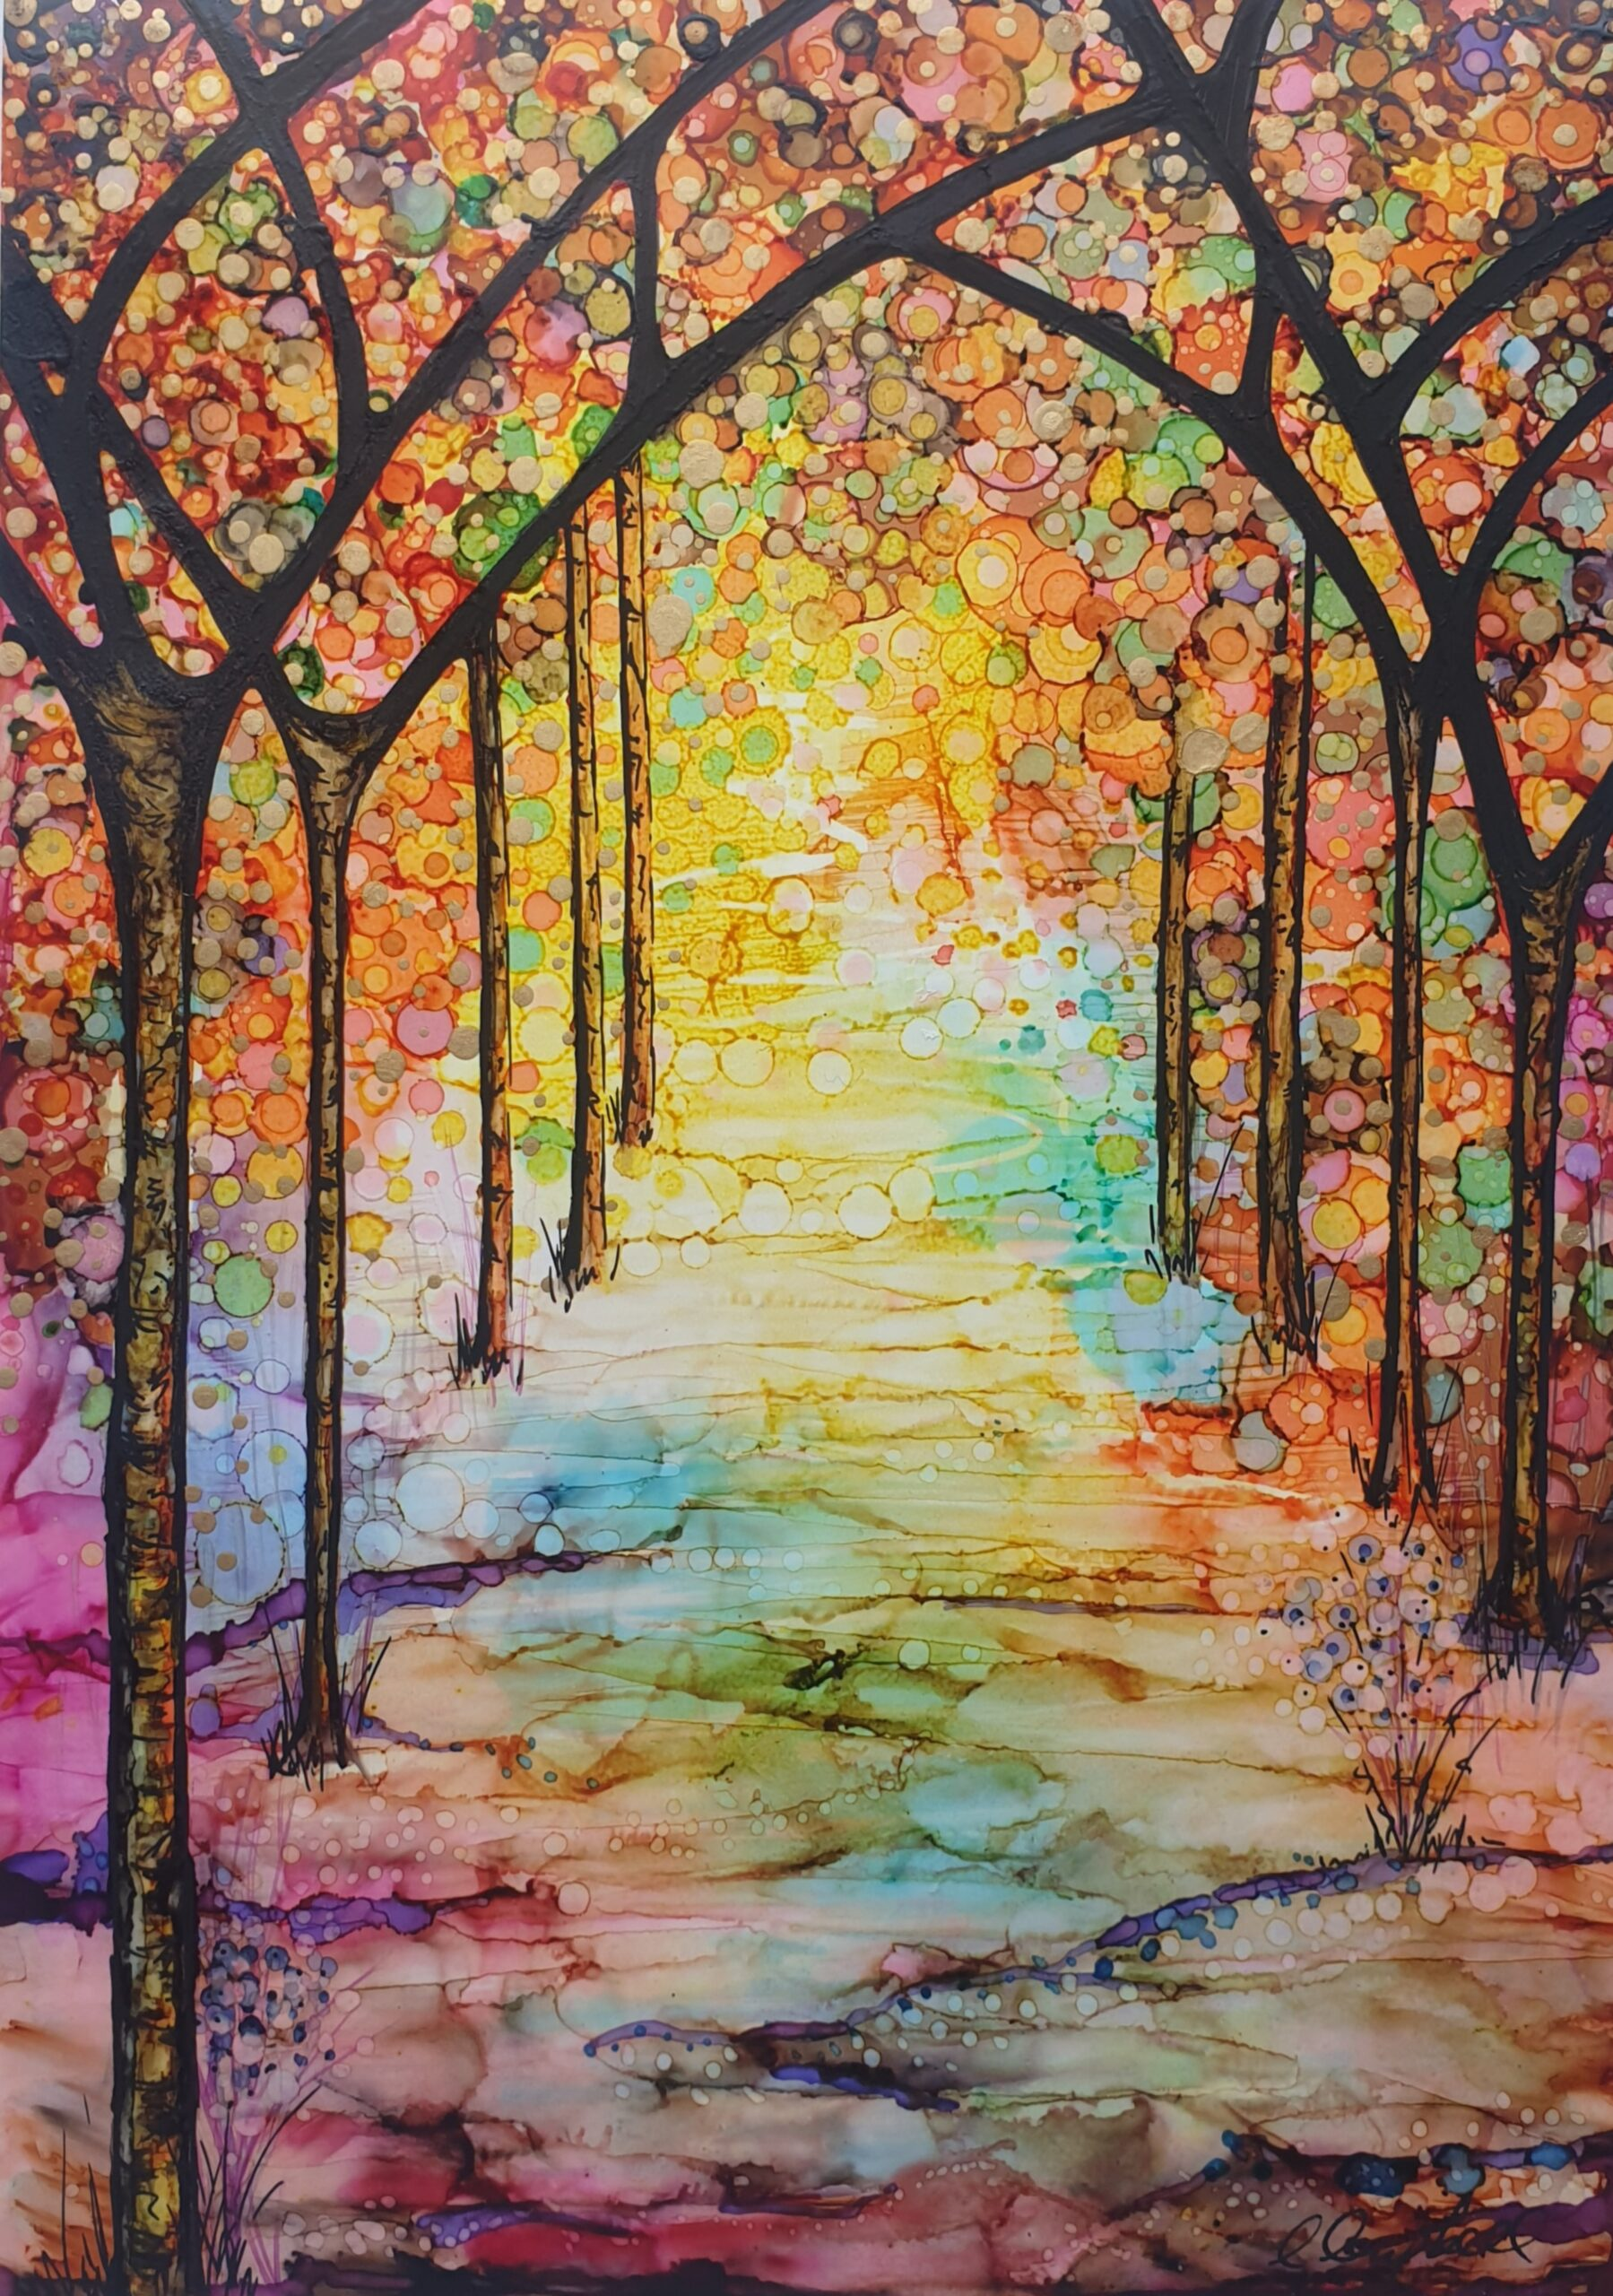 Evelyn Mcewan – CAMPBELL Charlene The warmth of autumn@2x